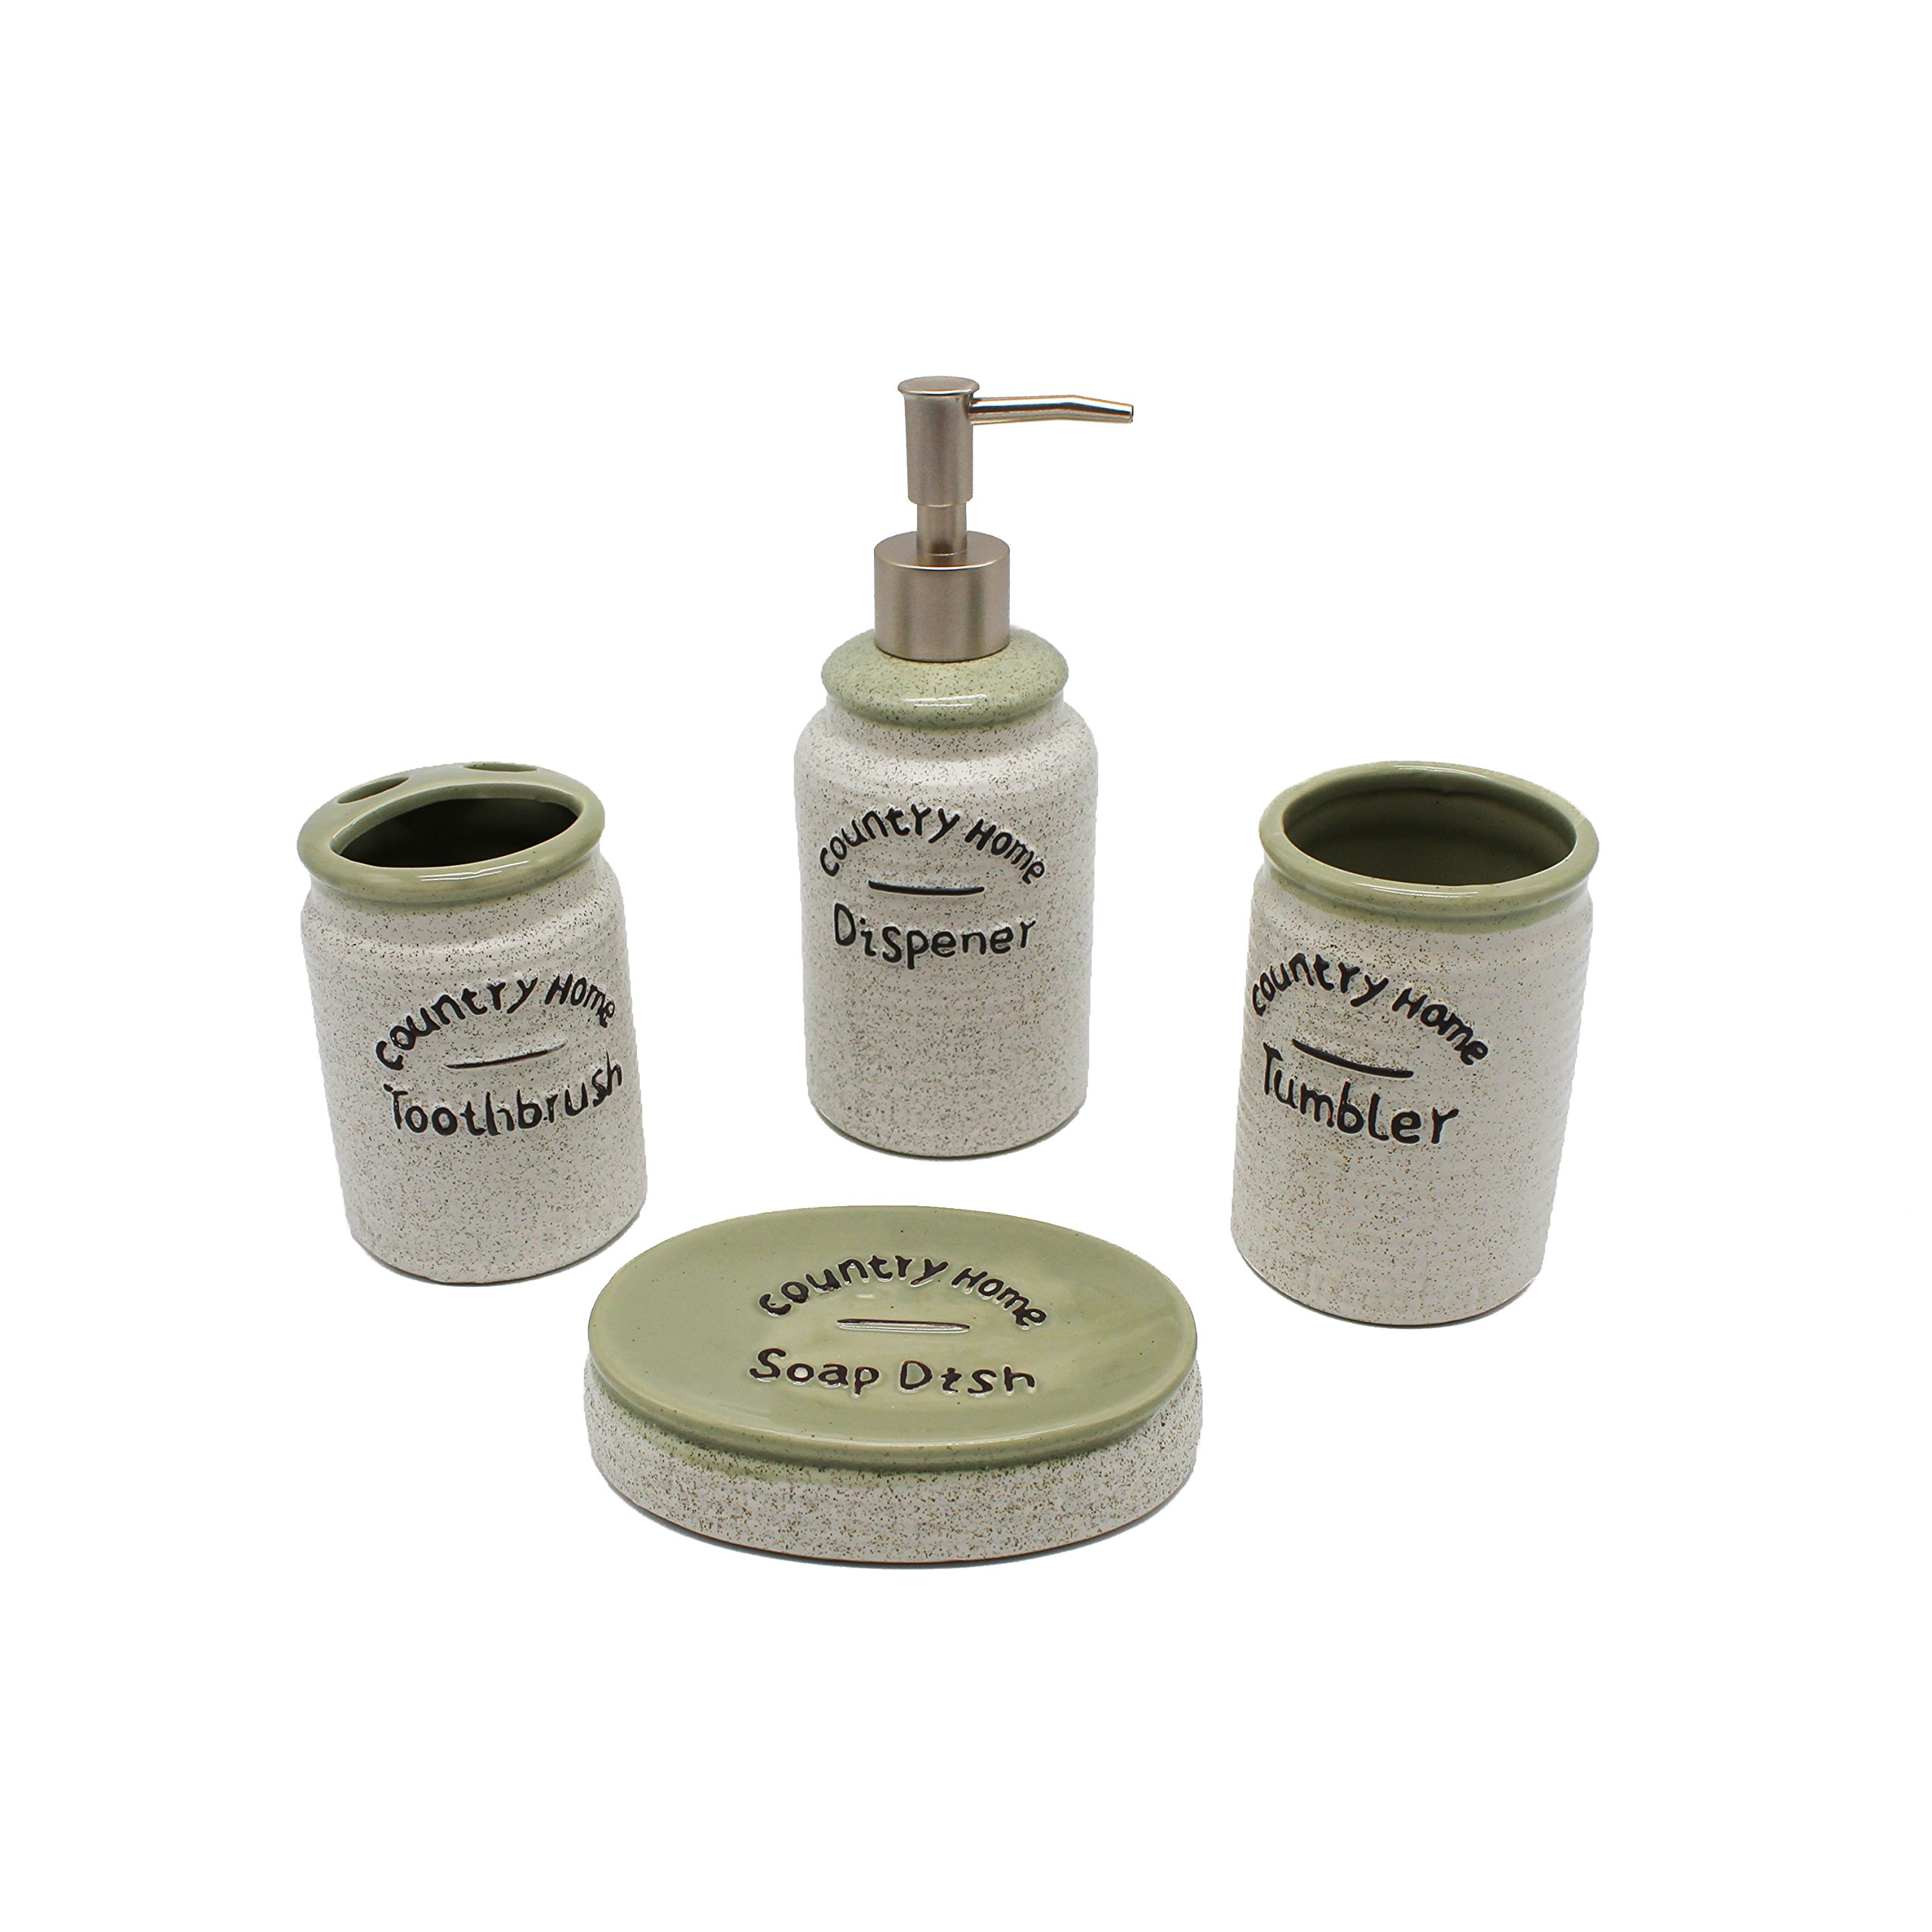 Country Home 4-Piece Ceramic Bathroom Accessories Set – Cozy Bath Ensemble Set Includes Decorative Countertop Soap Dispenser, Toothbrush Holder, Tumbler and Soap Dish – Perfect Home Décor Gift